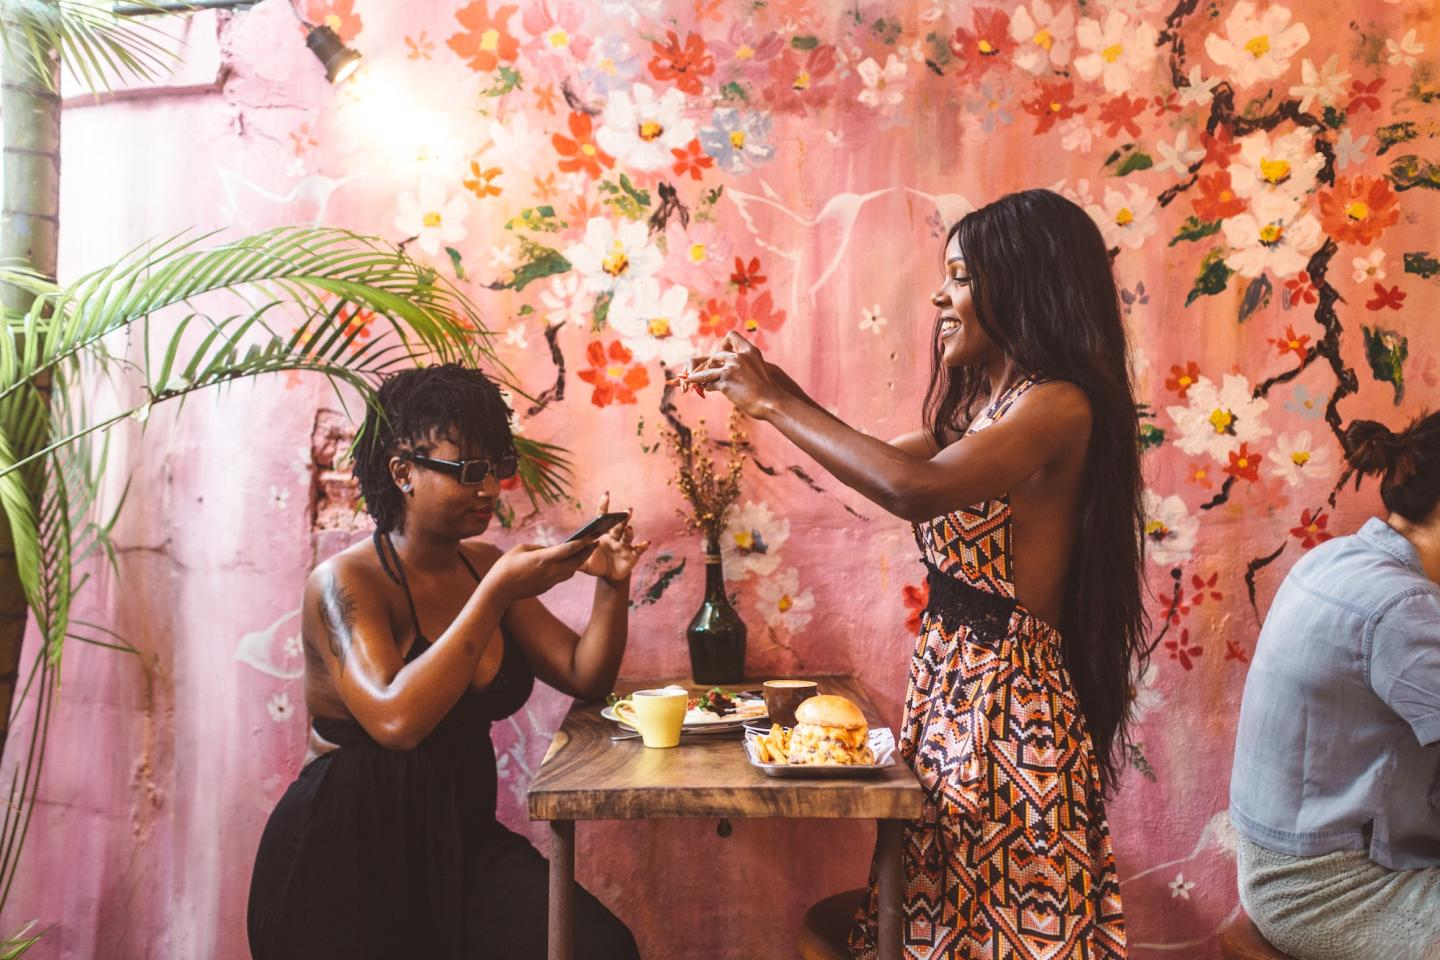 2 women taking photos of their food in a pink and flowery restaurant